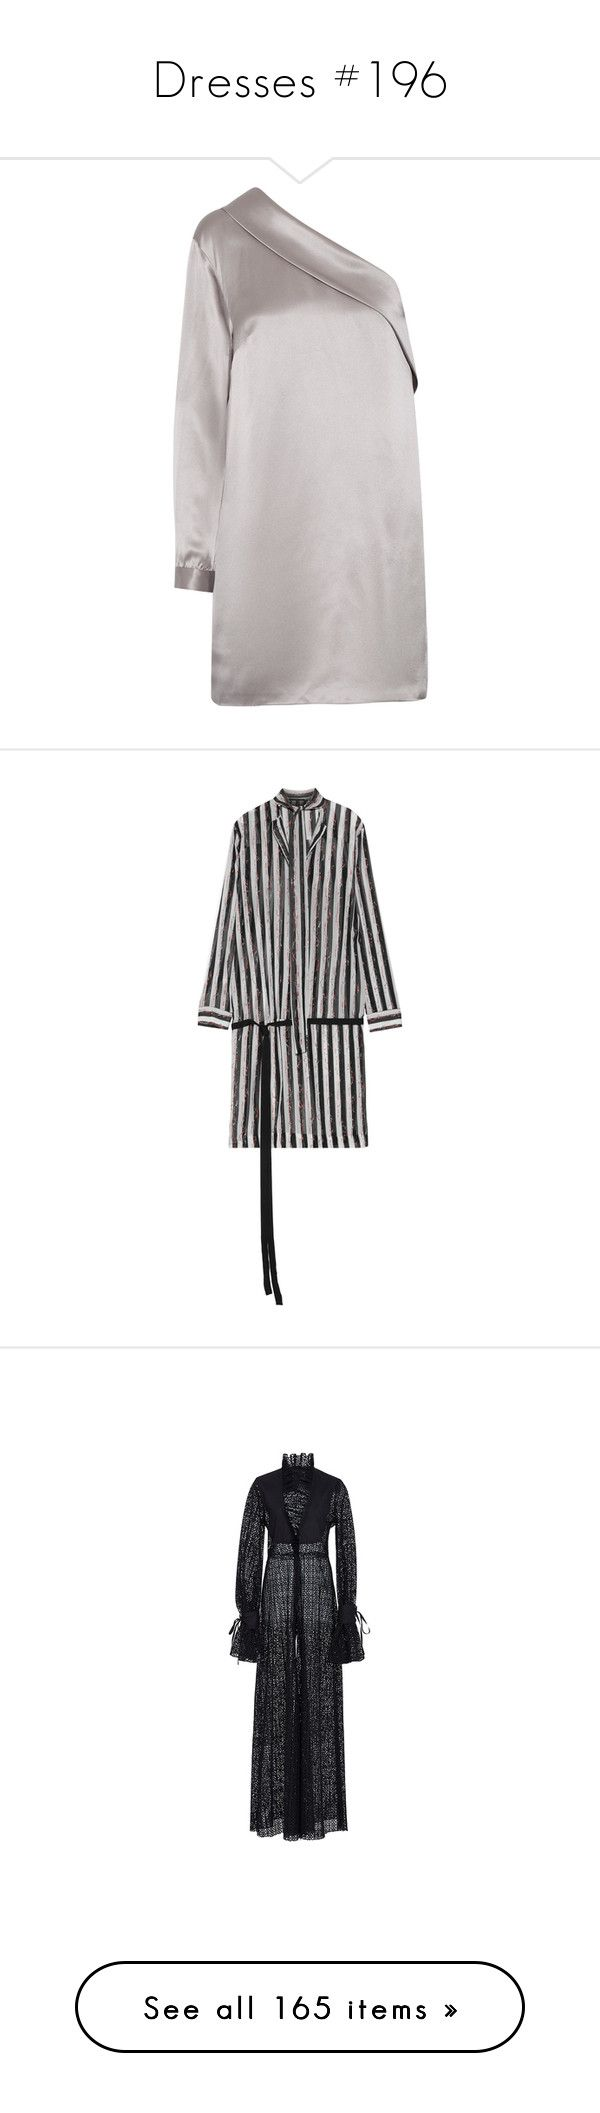 """Dresses #196"" by bliznec ❤ liked on Polyvore featuring dresses, silver, sleeve cocktail dress, drape dress, one sleeve dress, one shoulder dress, long-sleeve mini dress, tops, haider ackermann and stripe top"